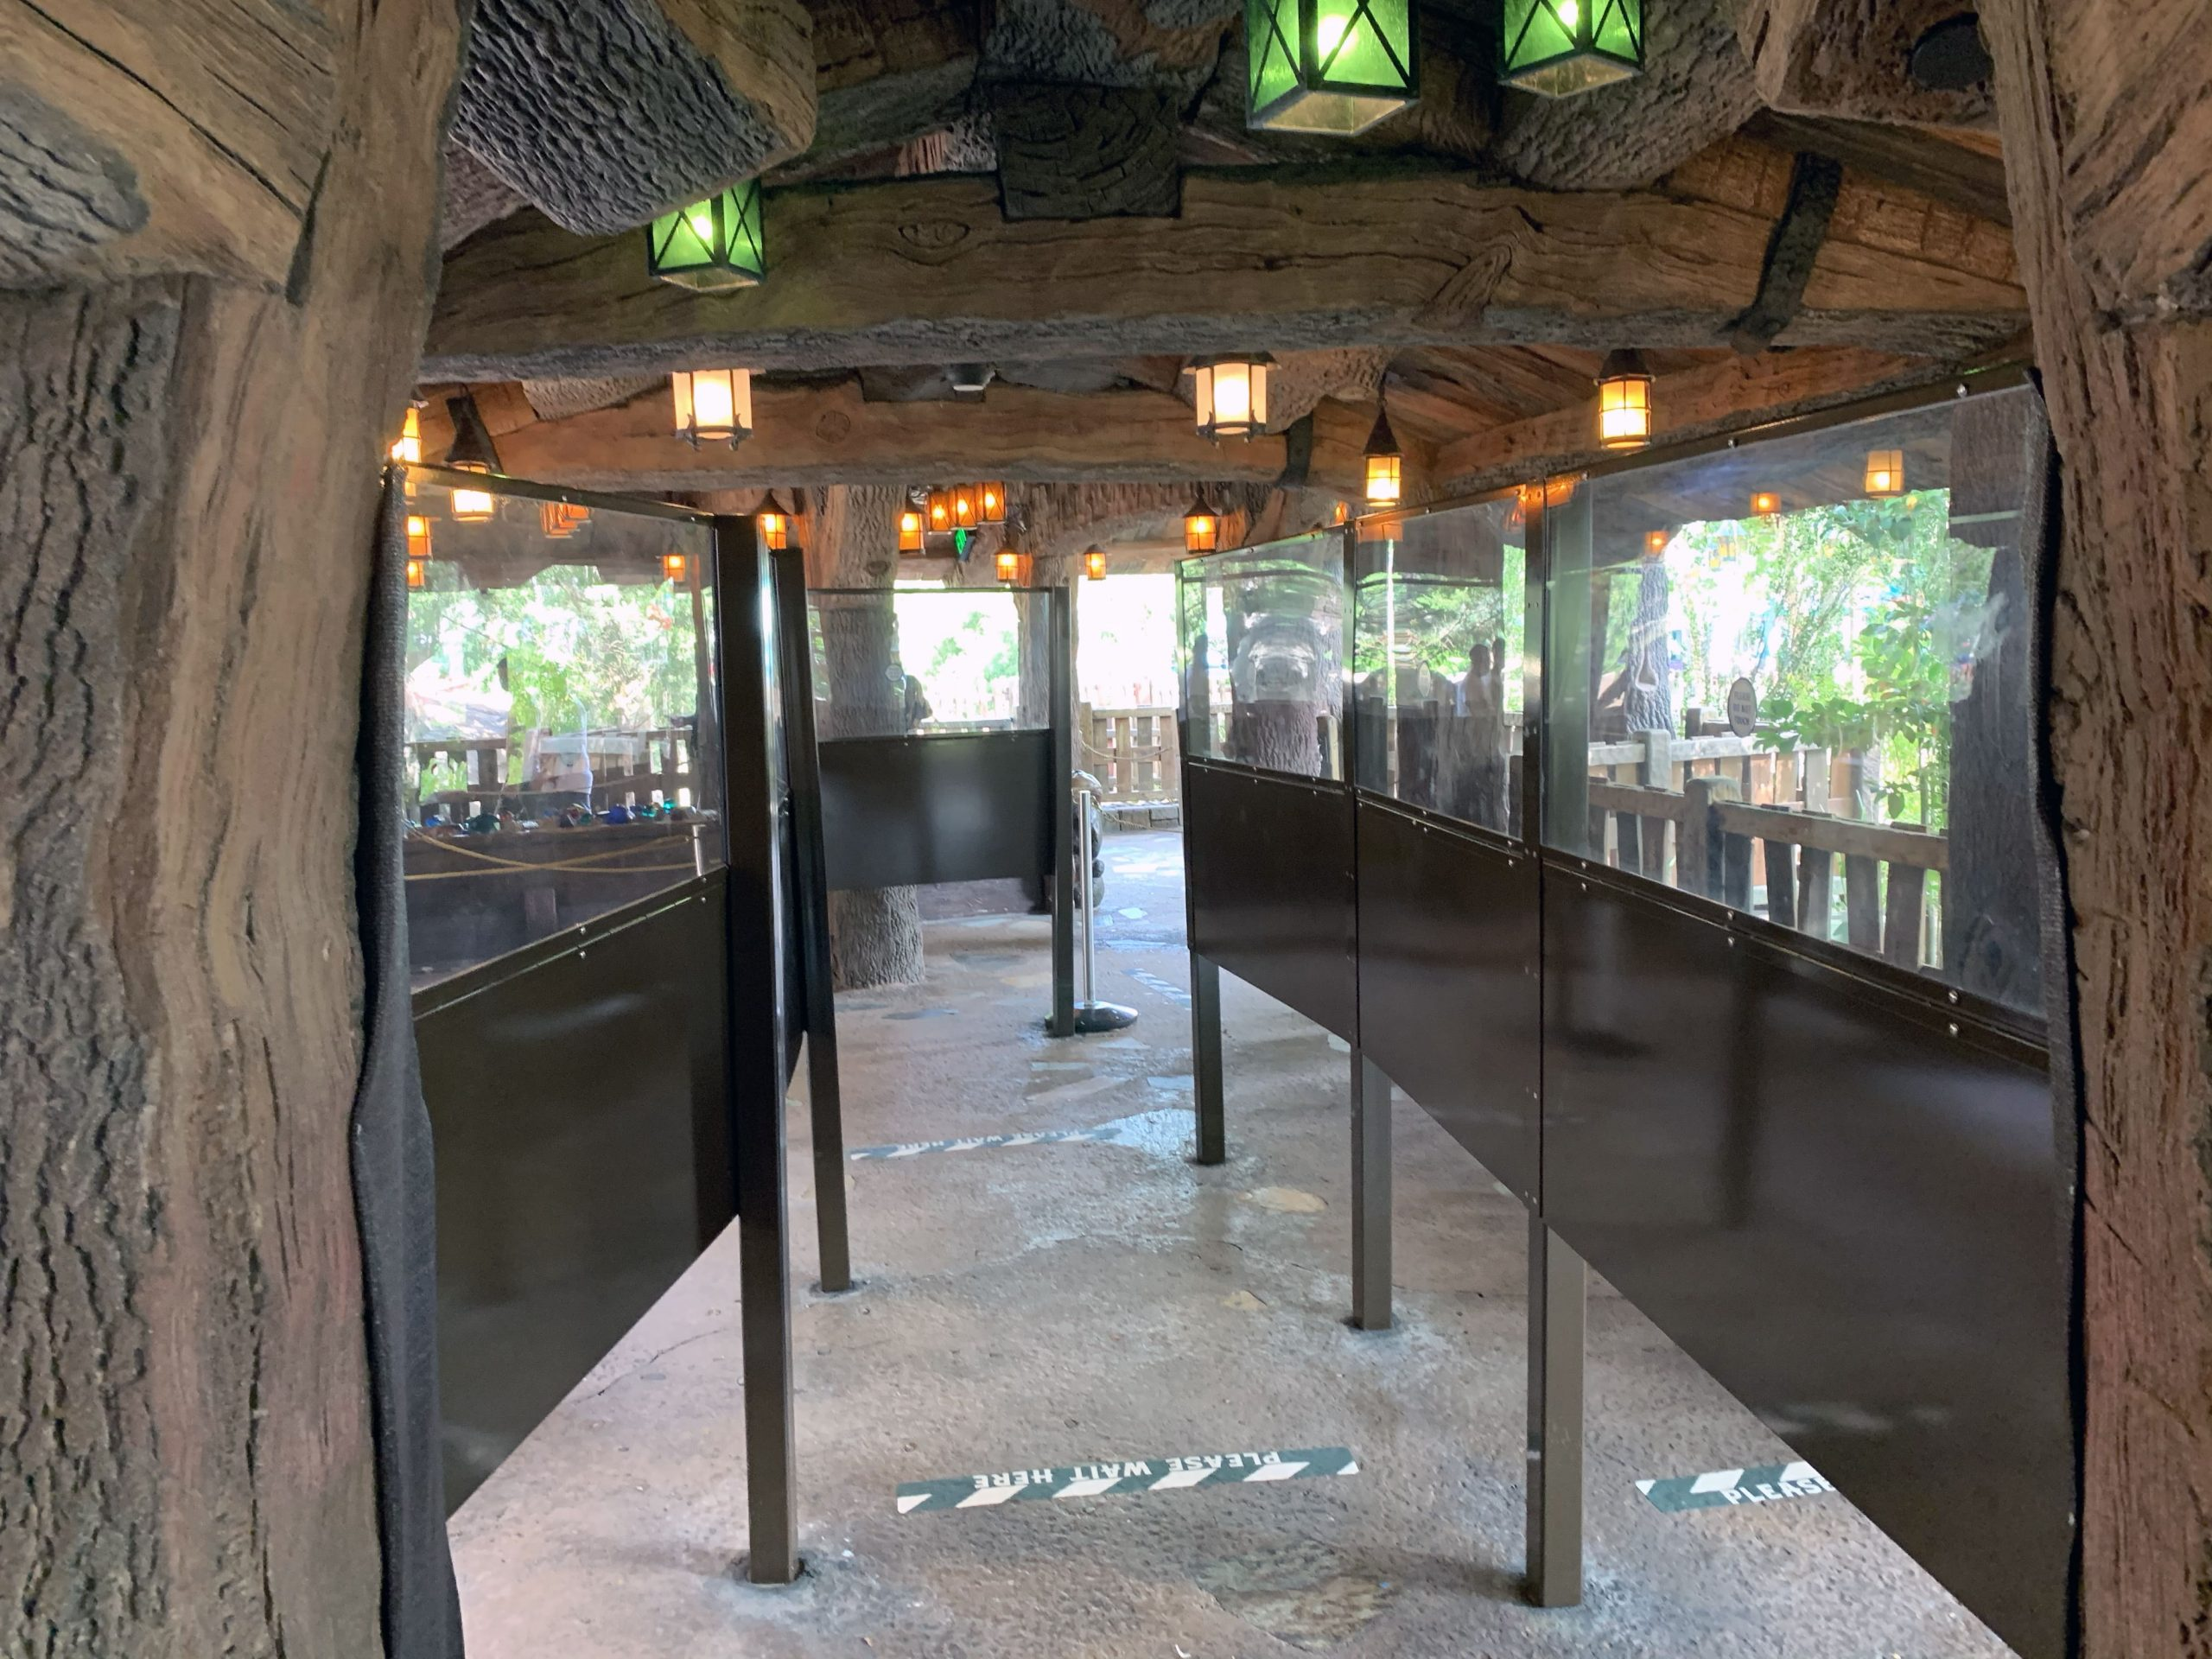 Plexiglass barriers in waiting queue at Walt Disney World